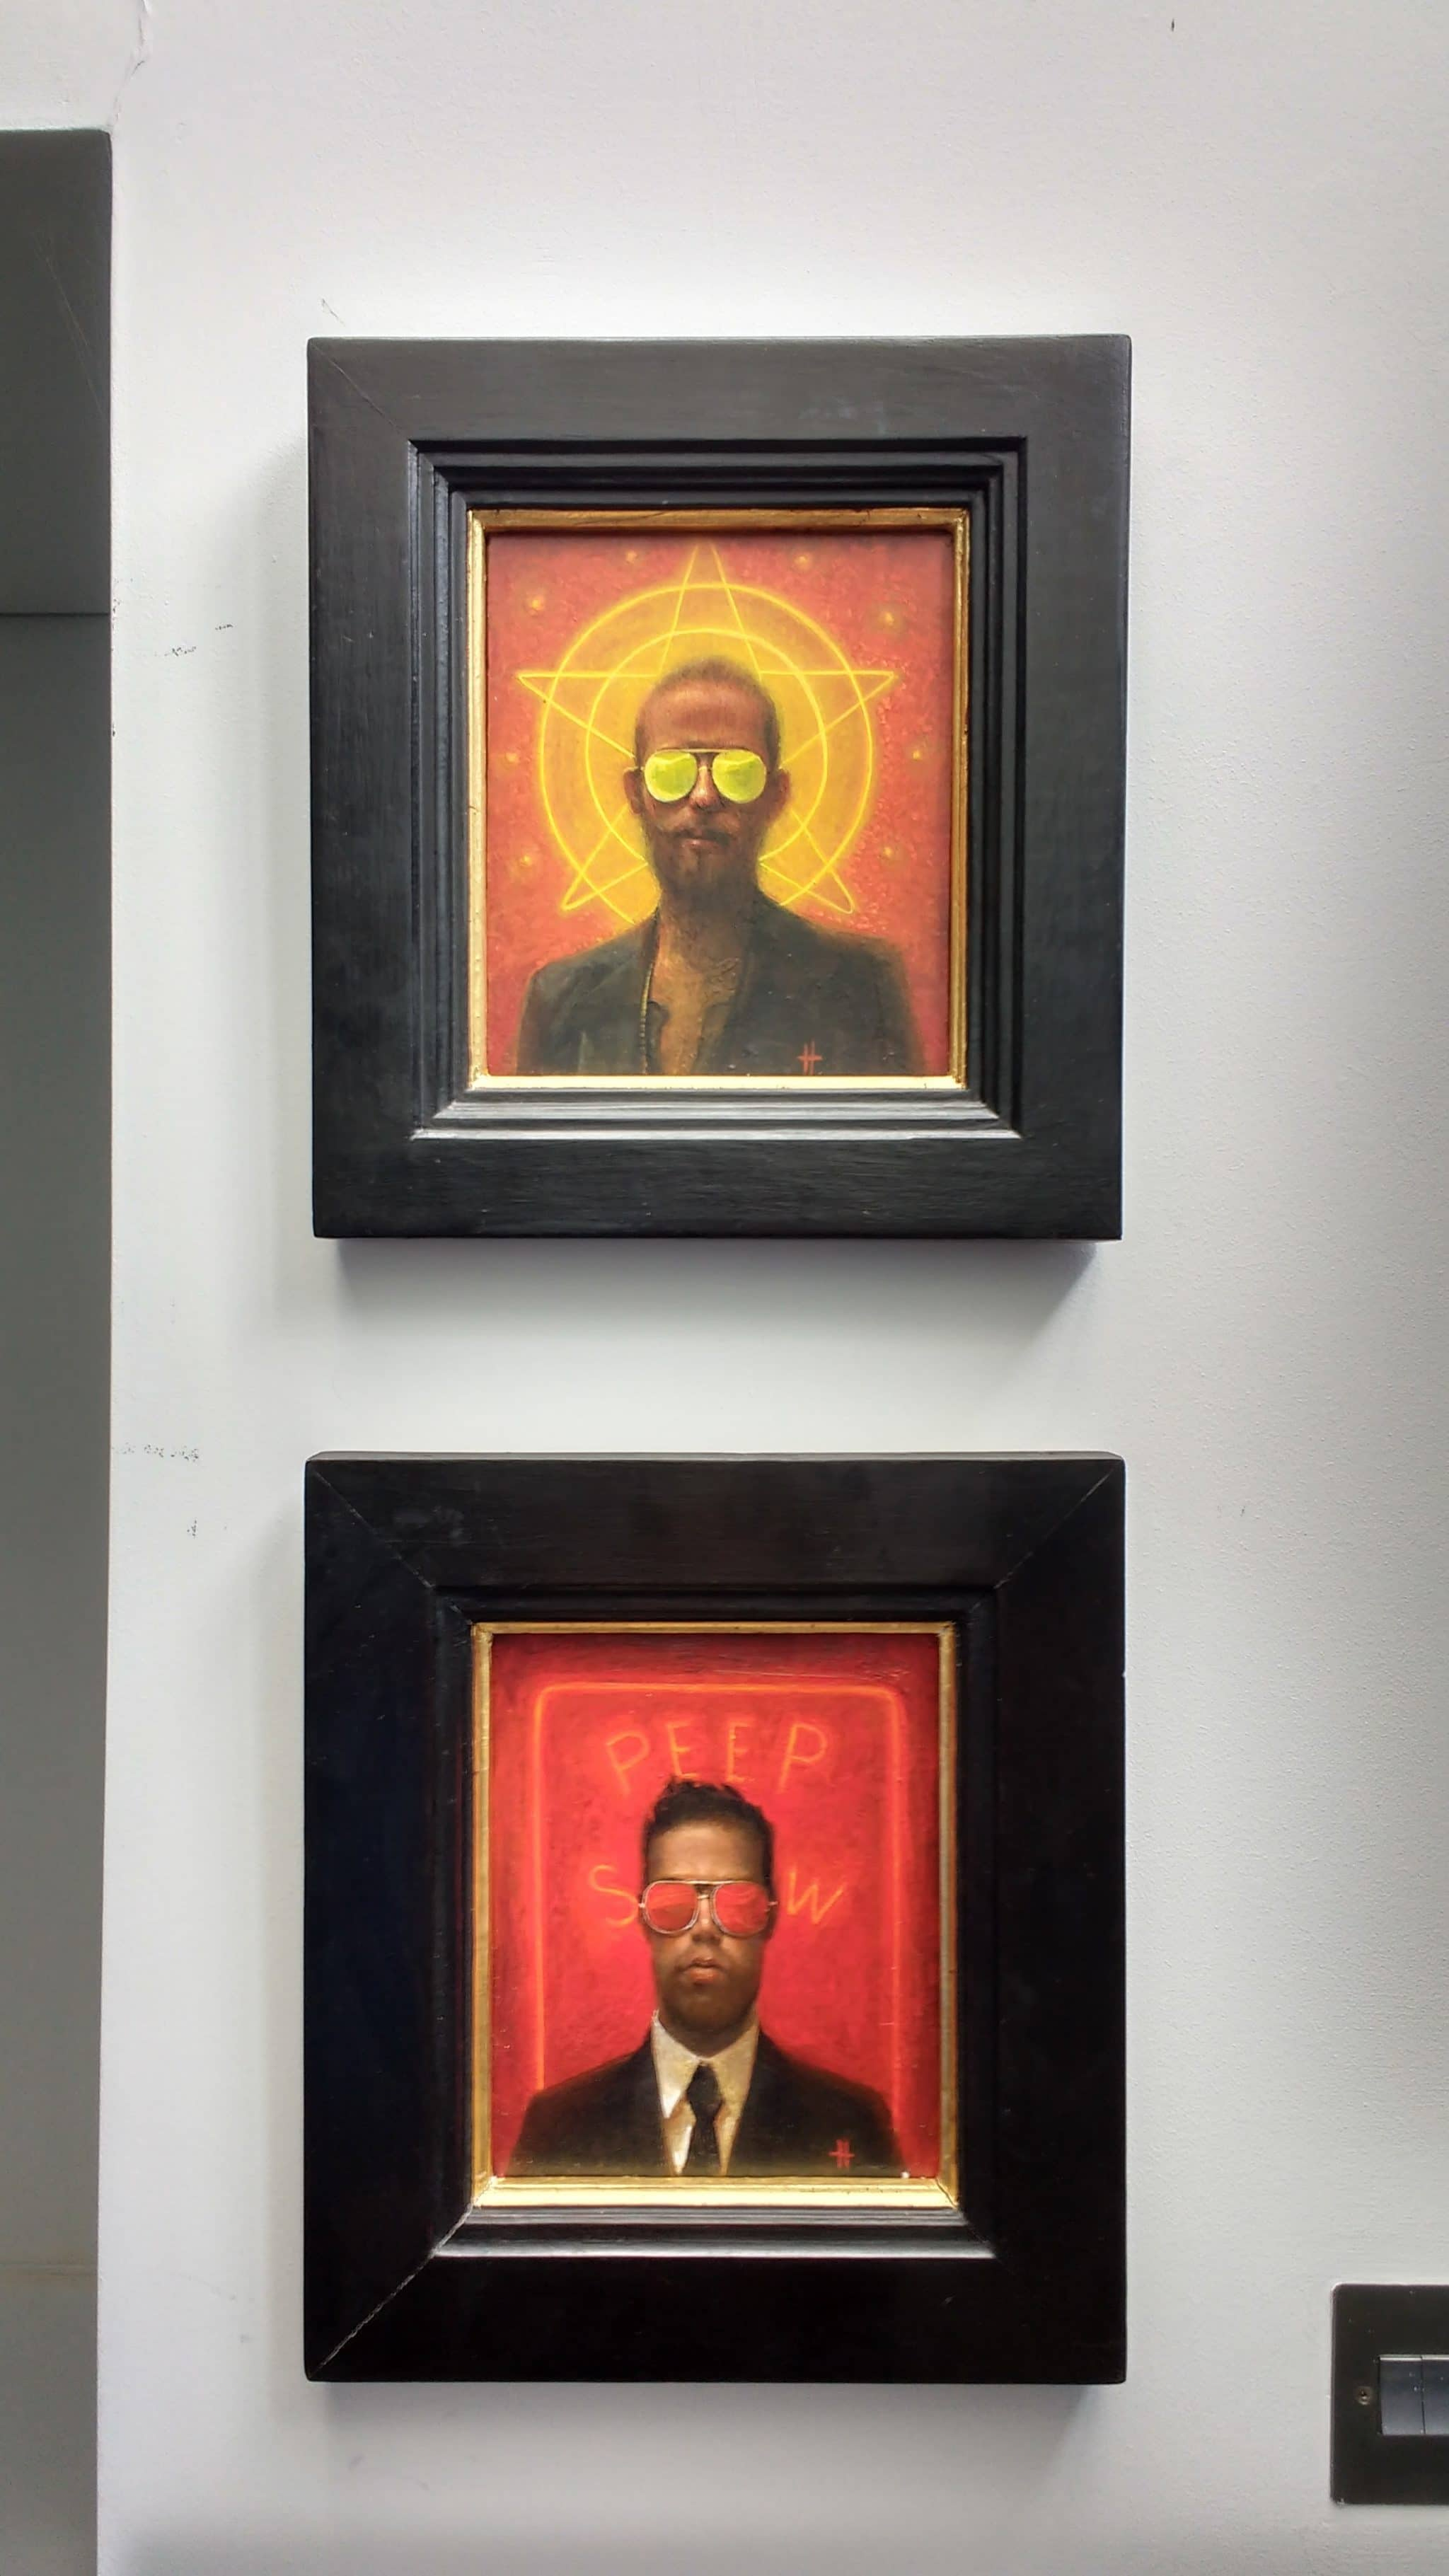 Oil paintings by artist Kevin Hendley. 'The Meaning of Light', above and 'Little Peep', below. Installed in a basement room in Brighton.